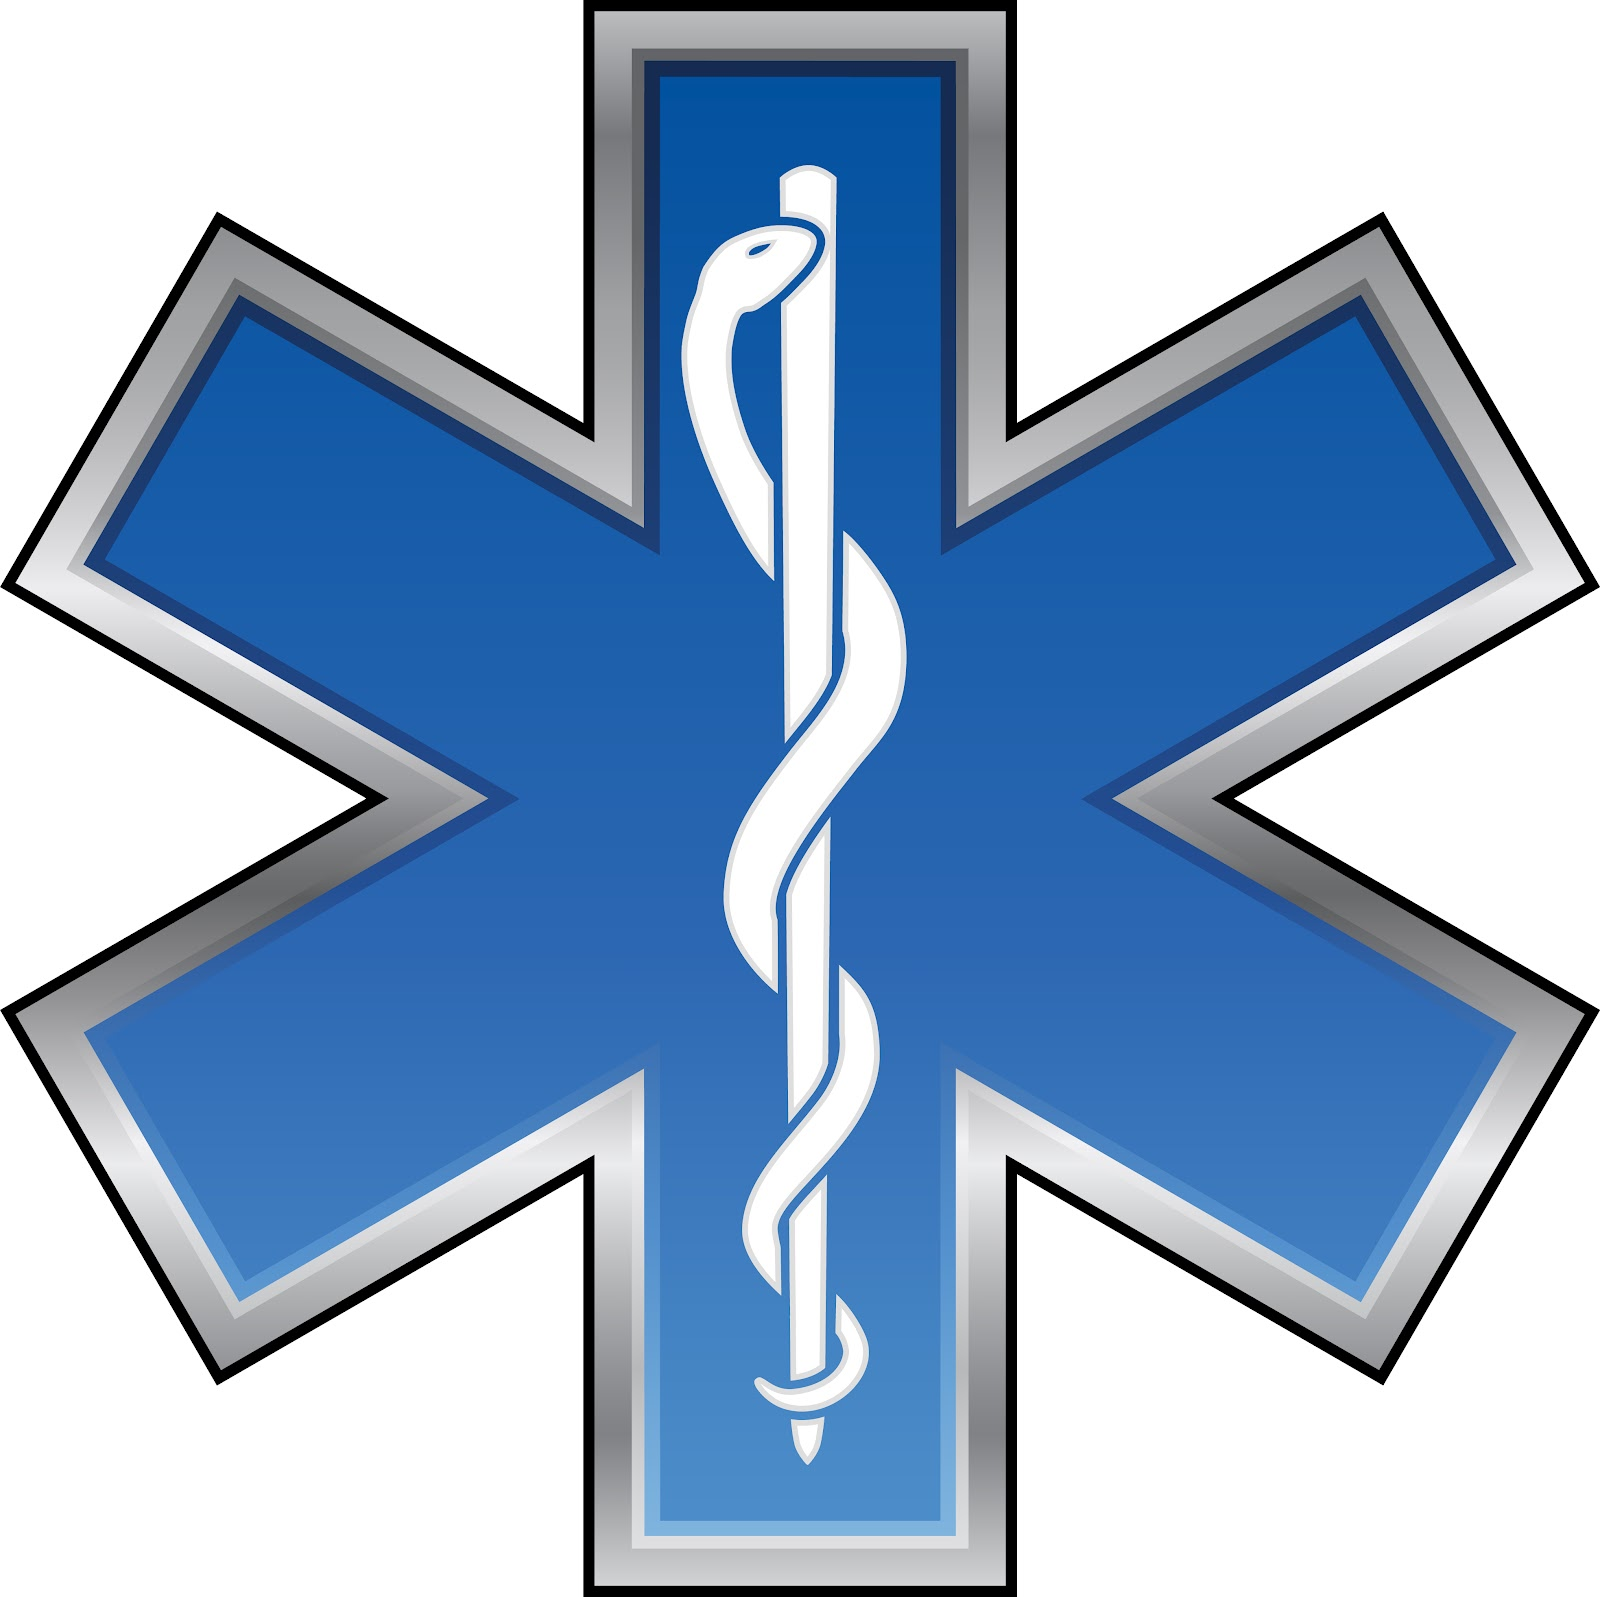 Free EMS Cliparts, Download Free Clip Art, Free Clip Art on Clipart.